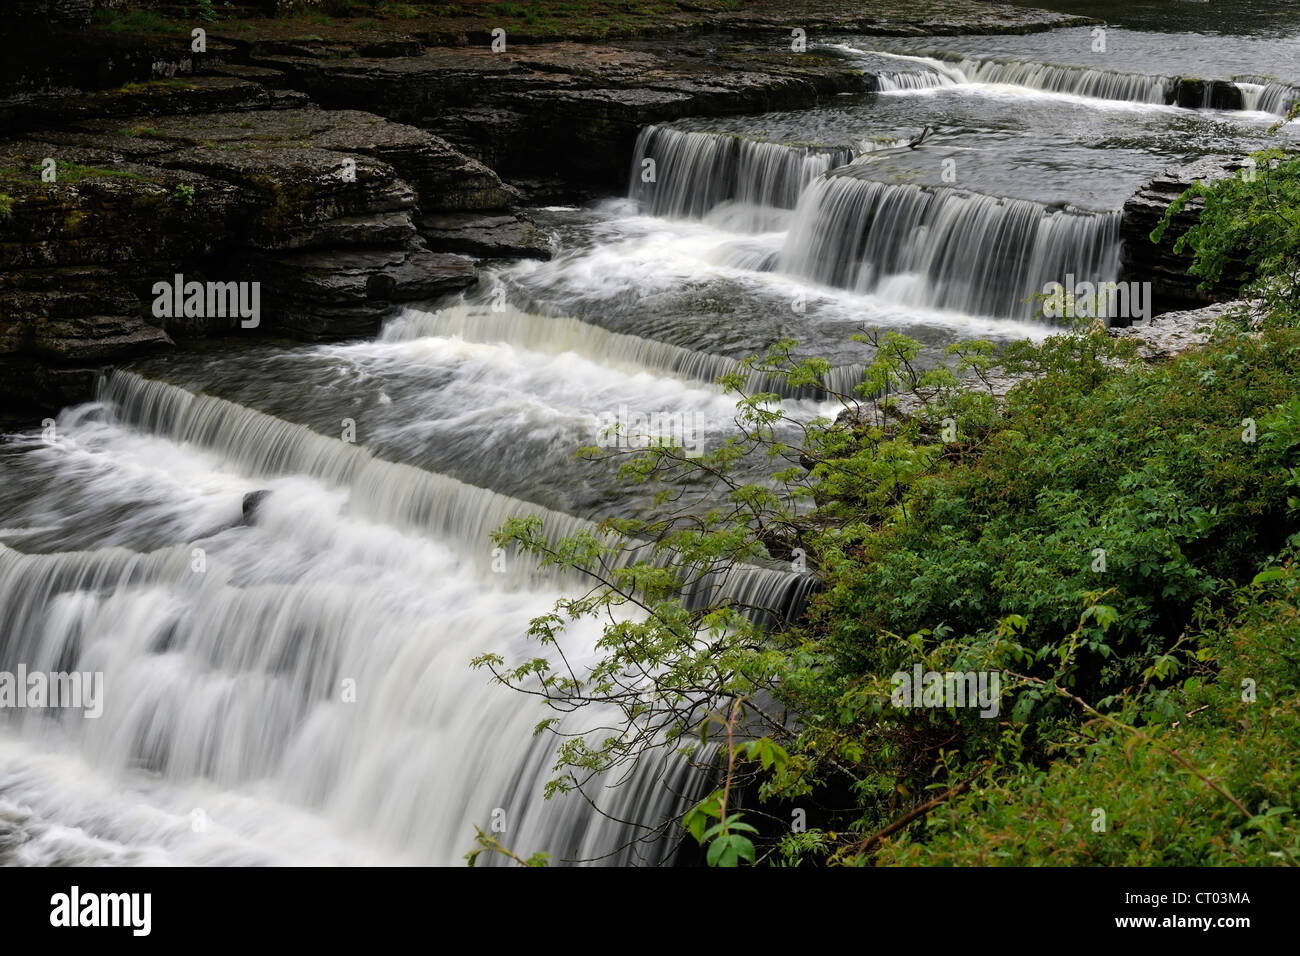 La spectaculaire Aysgarth Lower Falls, Wensleydale, Yorkshire, Angleterre Photo Stock